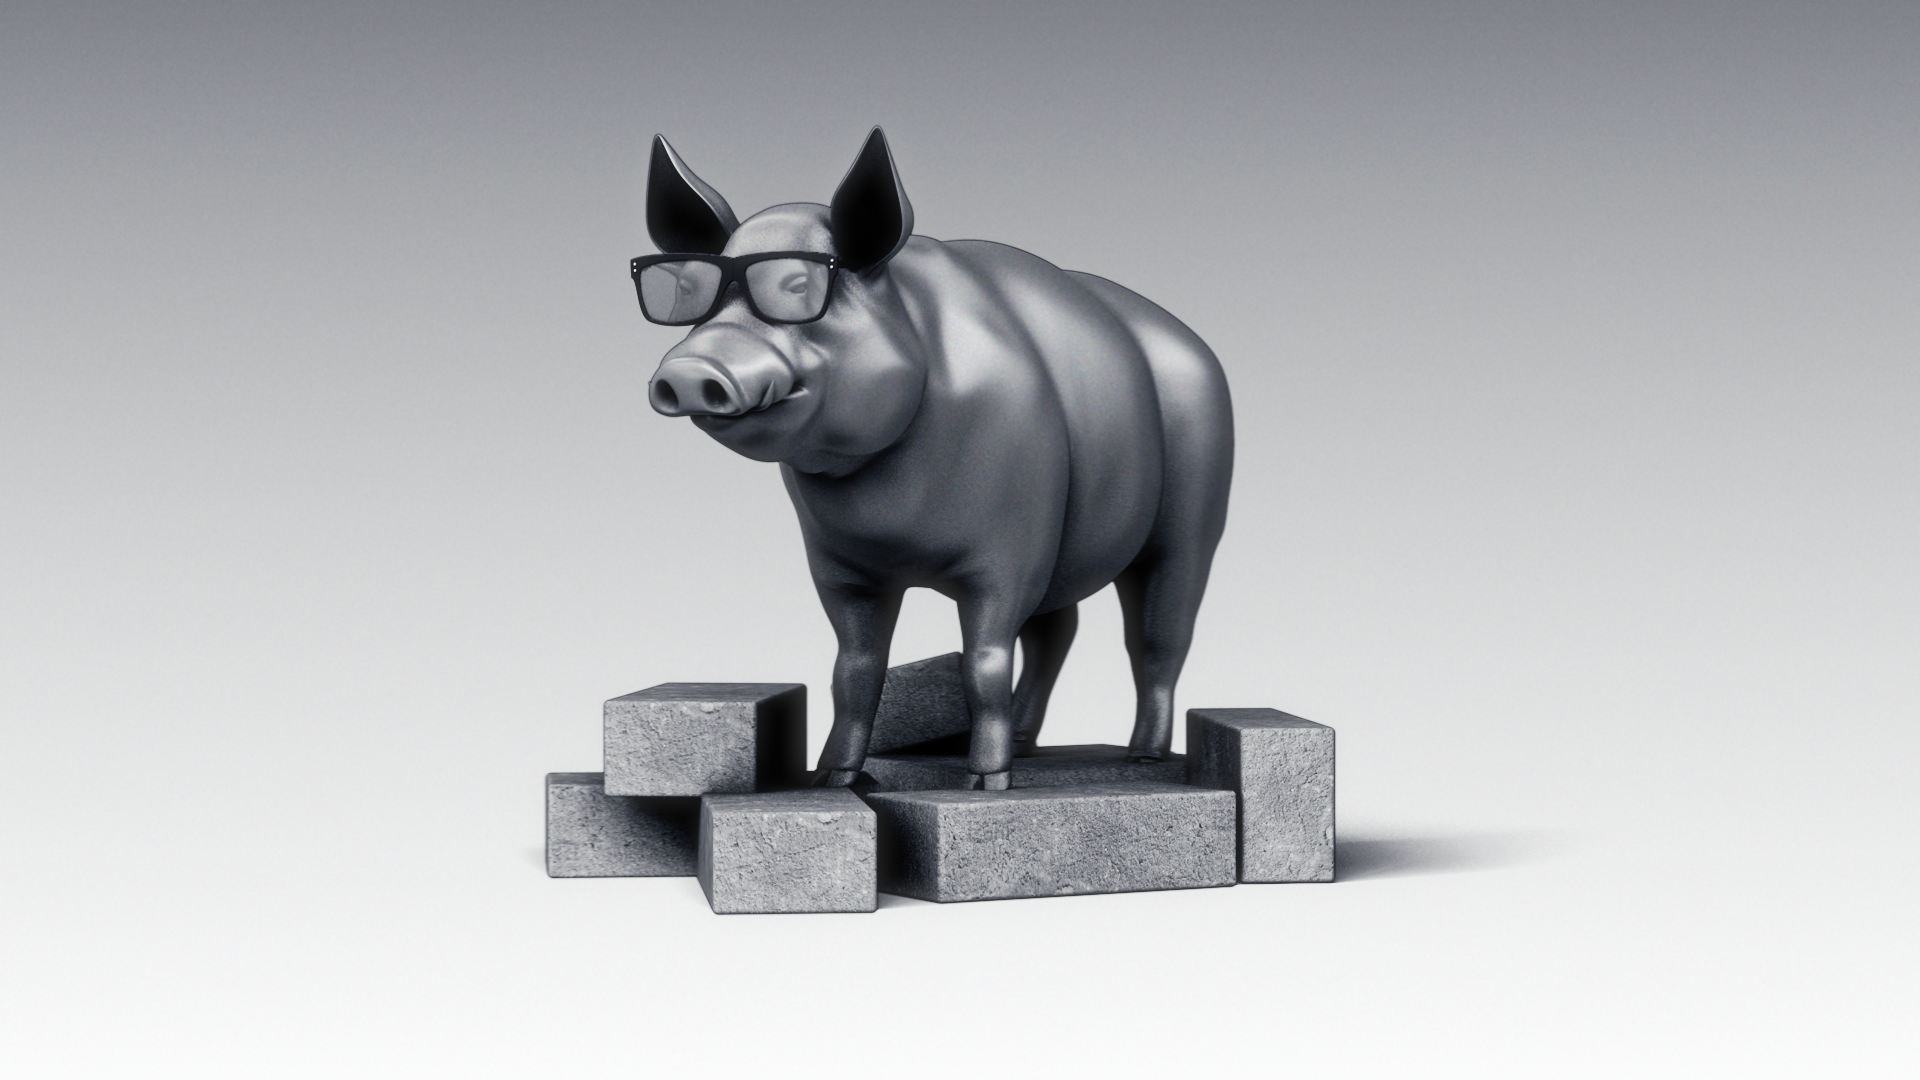 00s_Pig_01.png